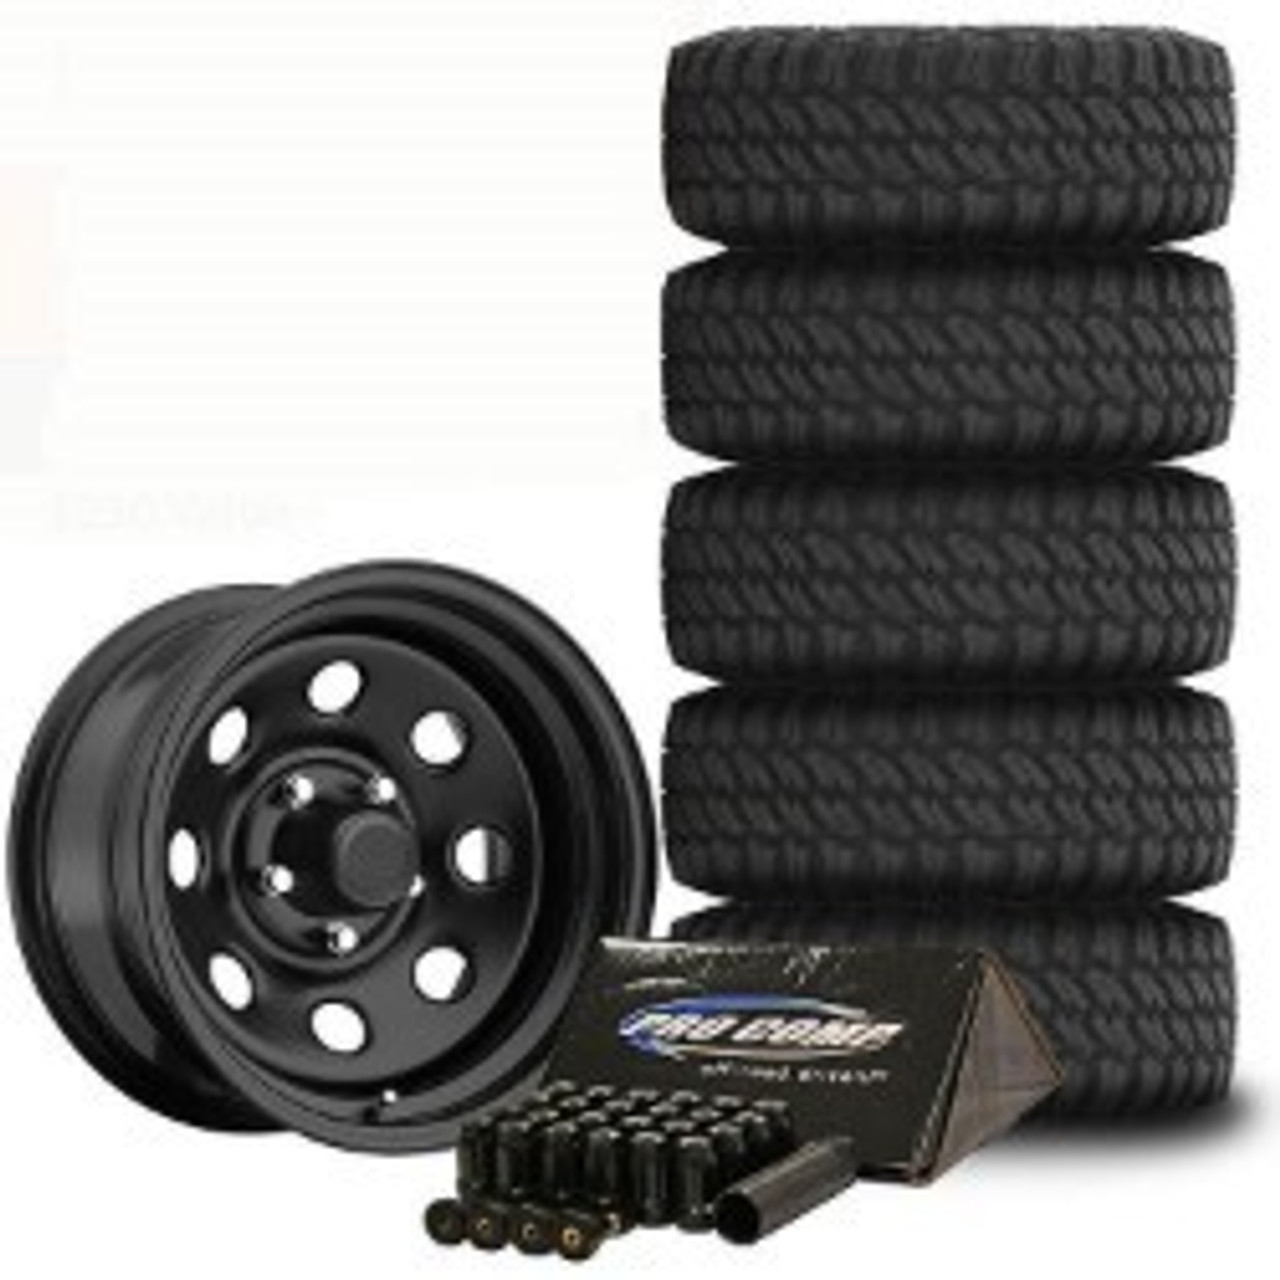 Lift, Wheel Tire Packages